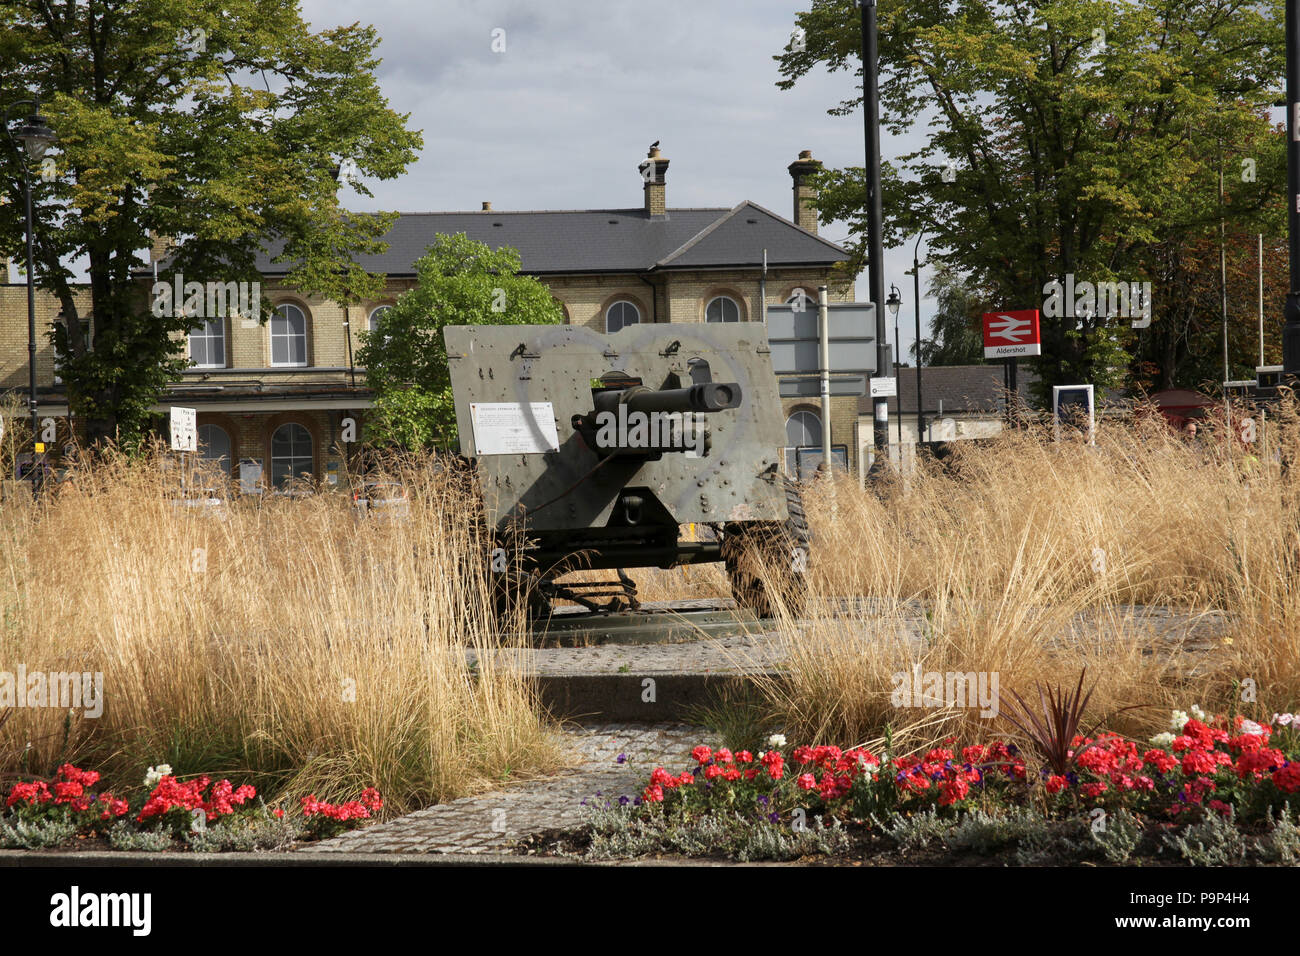 A 25 Pounder British field gun and howitzer found at the approach to Aldershot Train station, England. - Stock Image